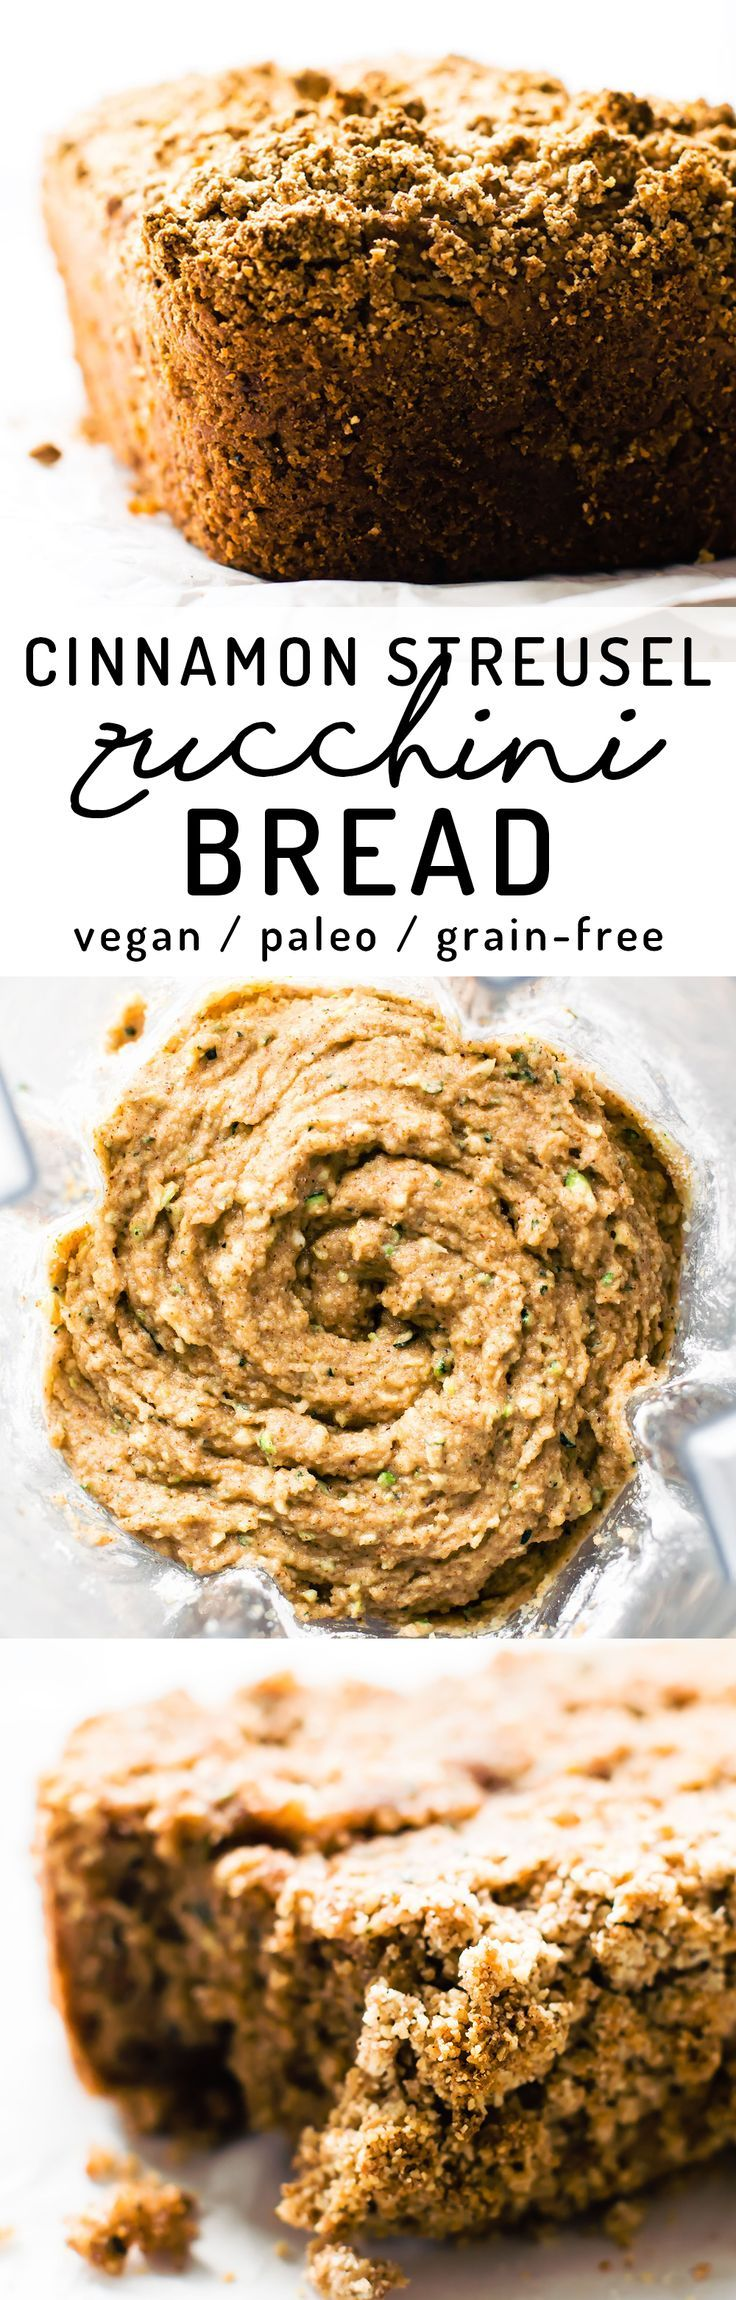 Deliciously simple almond flour zucchini bread with sweet cinnamon streusel layered into the soft fluffy loaf. Hidden veggie baking at it's best! #vegan #paleo #healthy